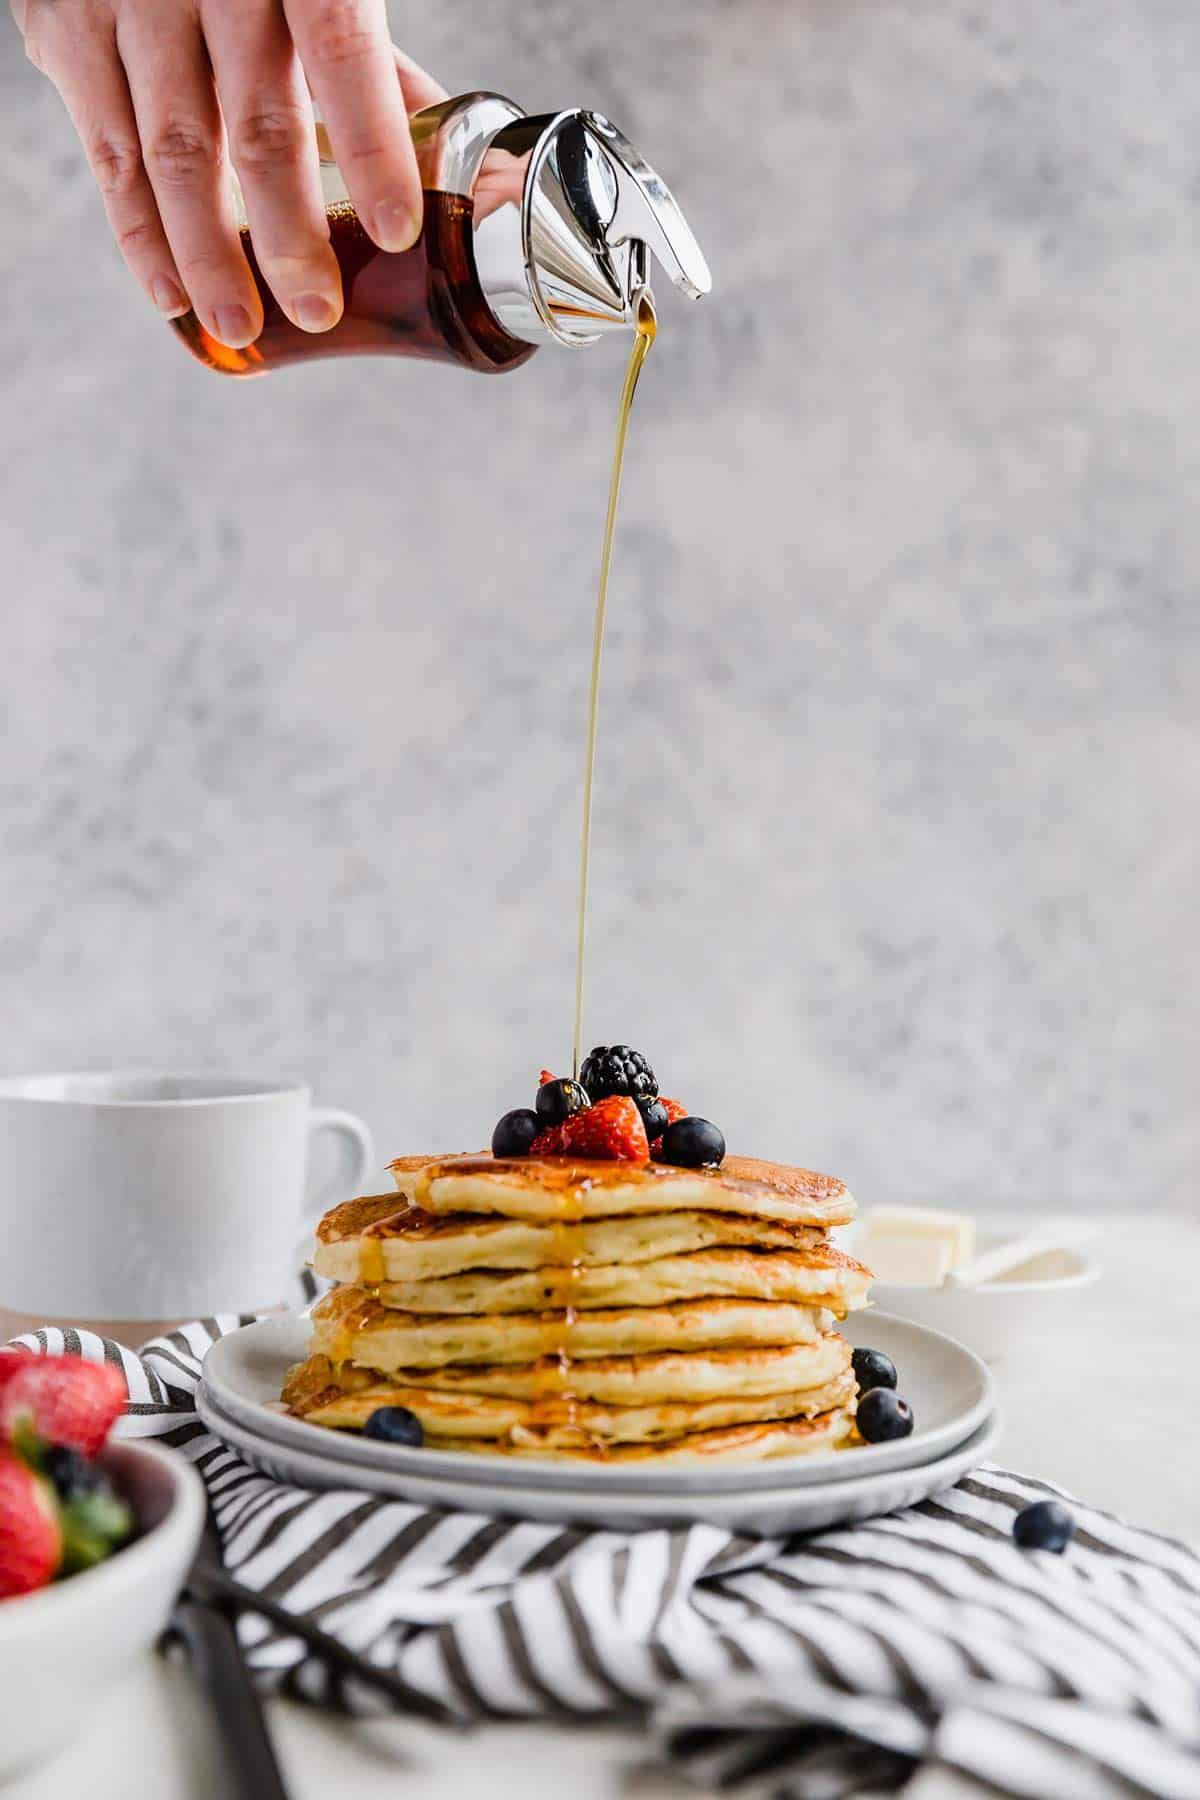 A hand pouring maple syrup over the stack of buttermilk pancaked topped with fresh berries on a blue and white striped towel.